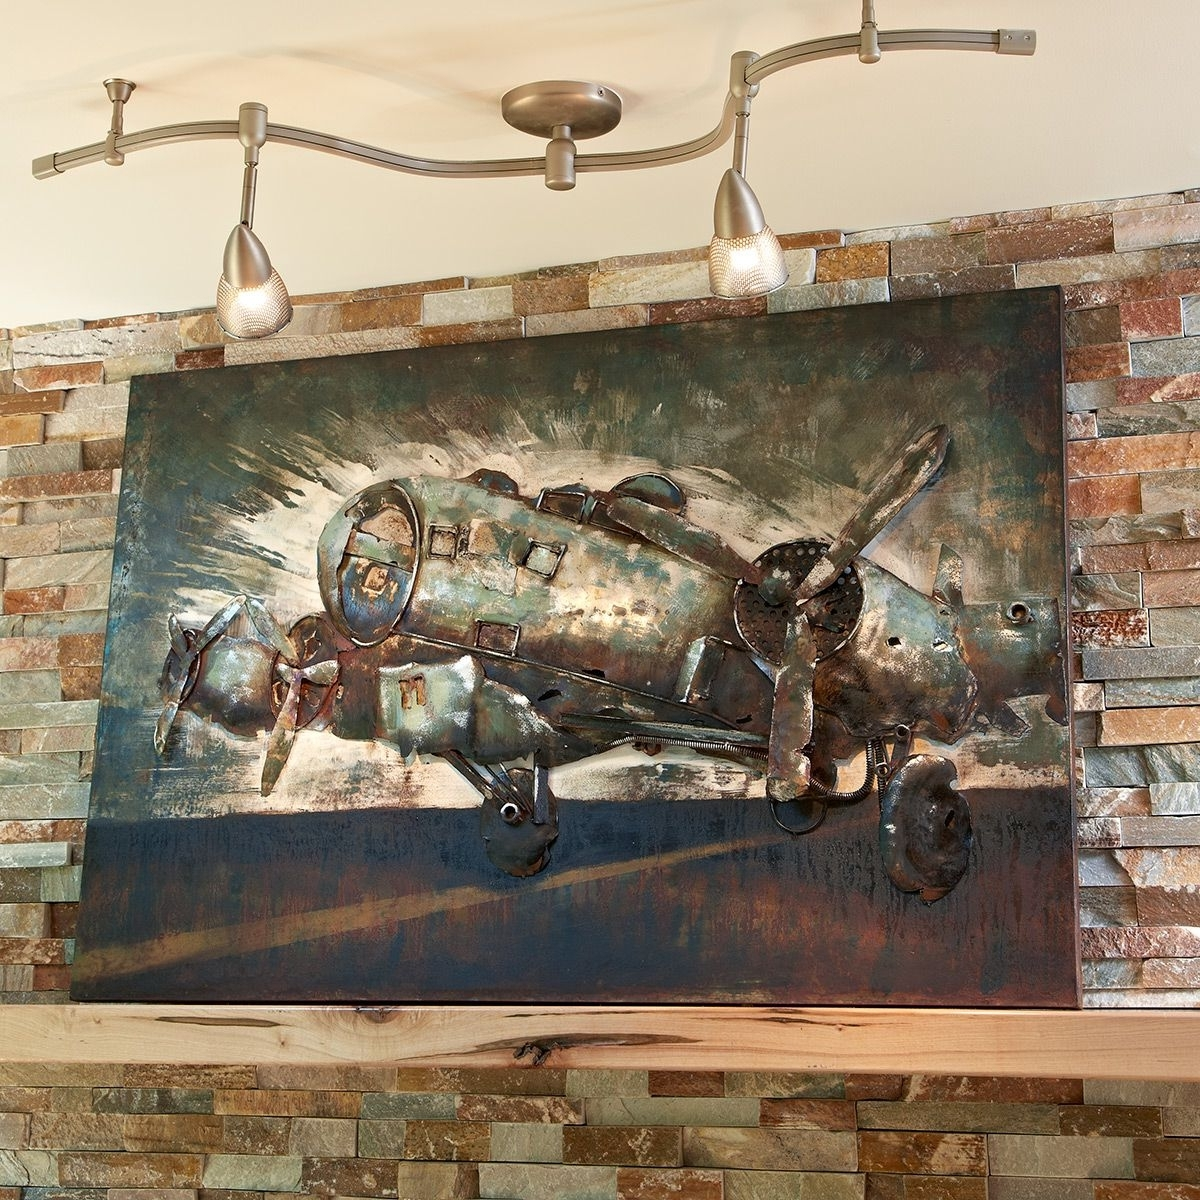 Favorite Wall Art Classy Design Aviation Wall Decor With Metal B 17 Bomber Intended For Aviation Wall Art (View 7 of 15)